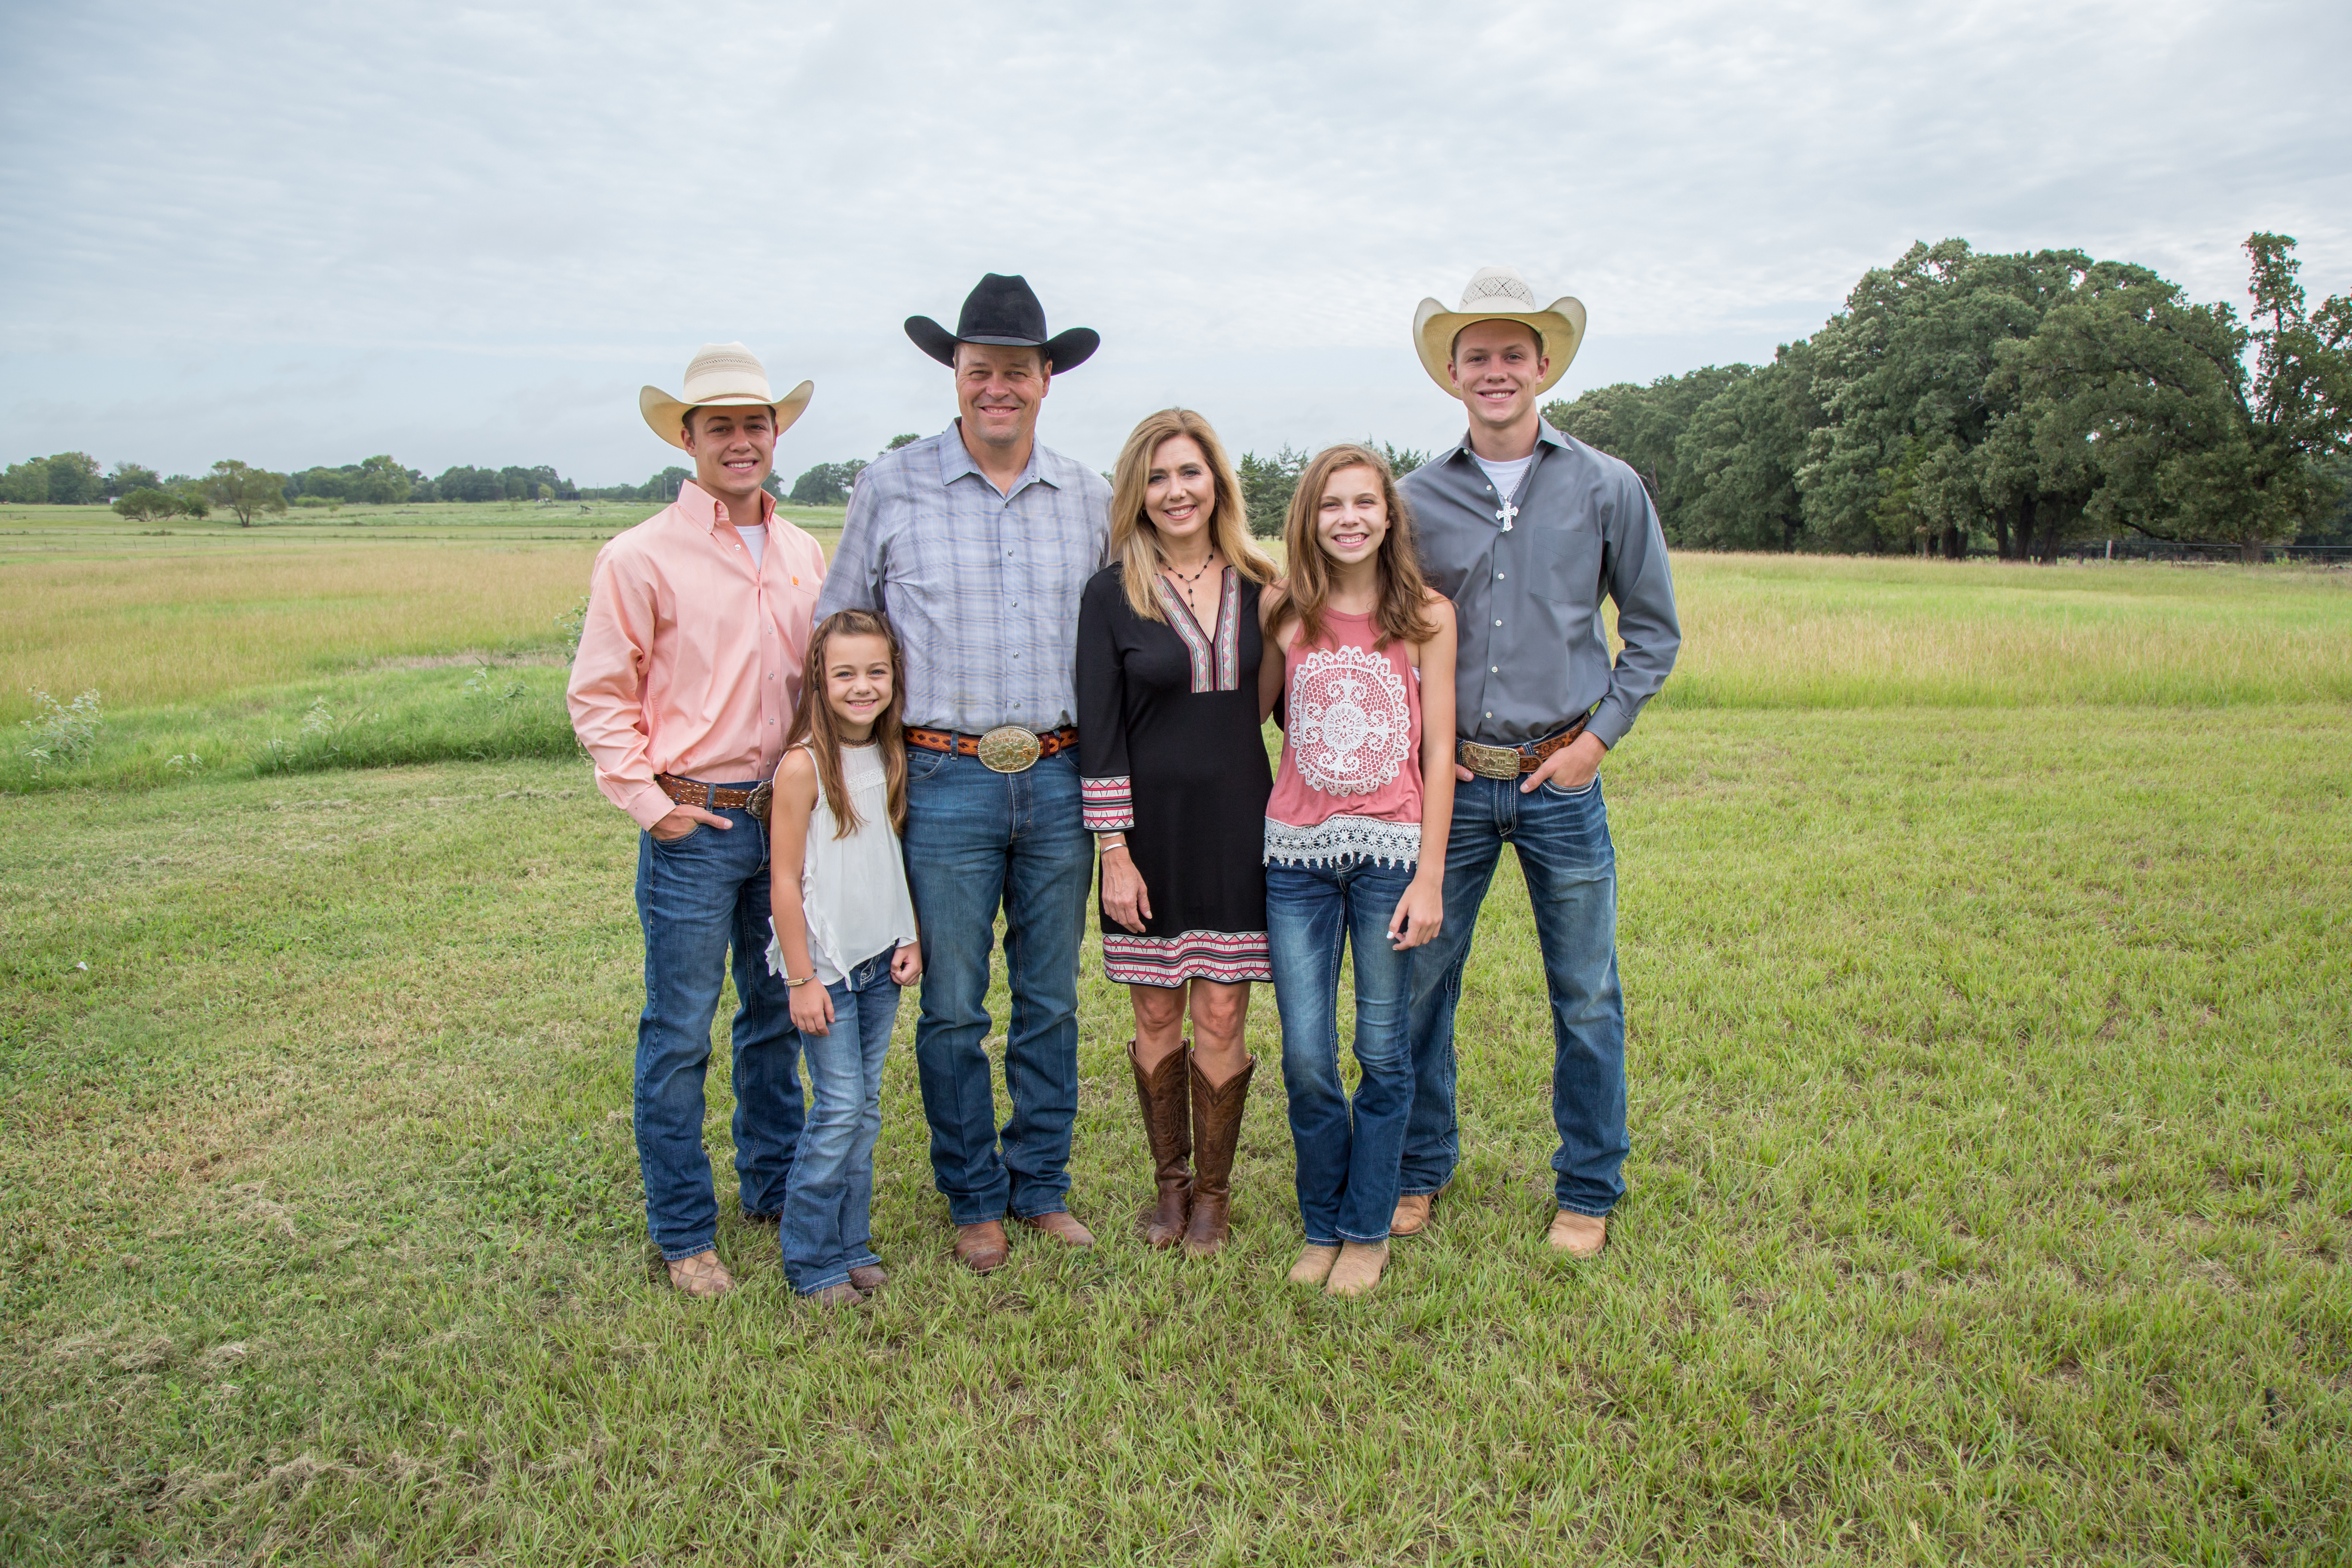 Rope and Candice Myers and their family